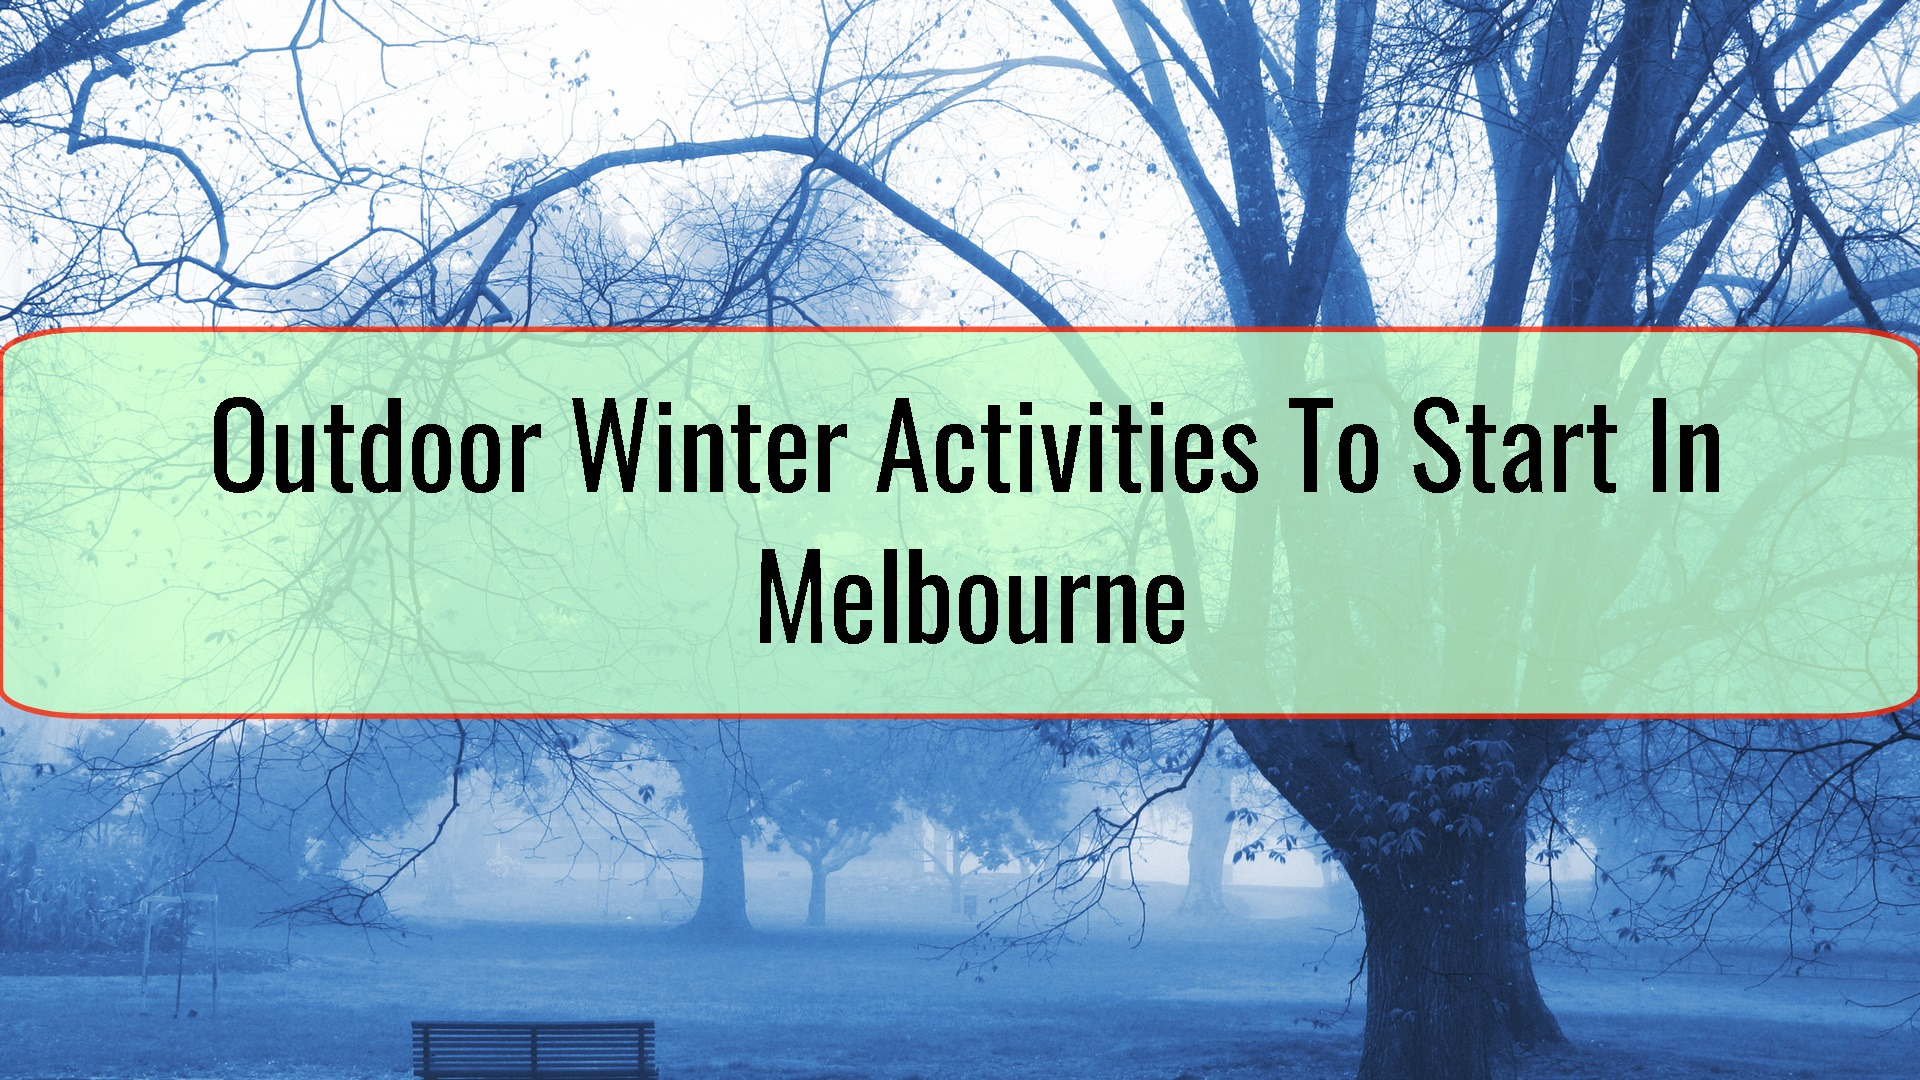 Outdoor Winter Activities To Start In Melbourne